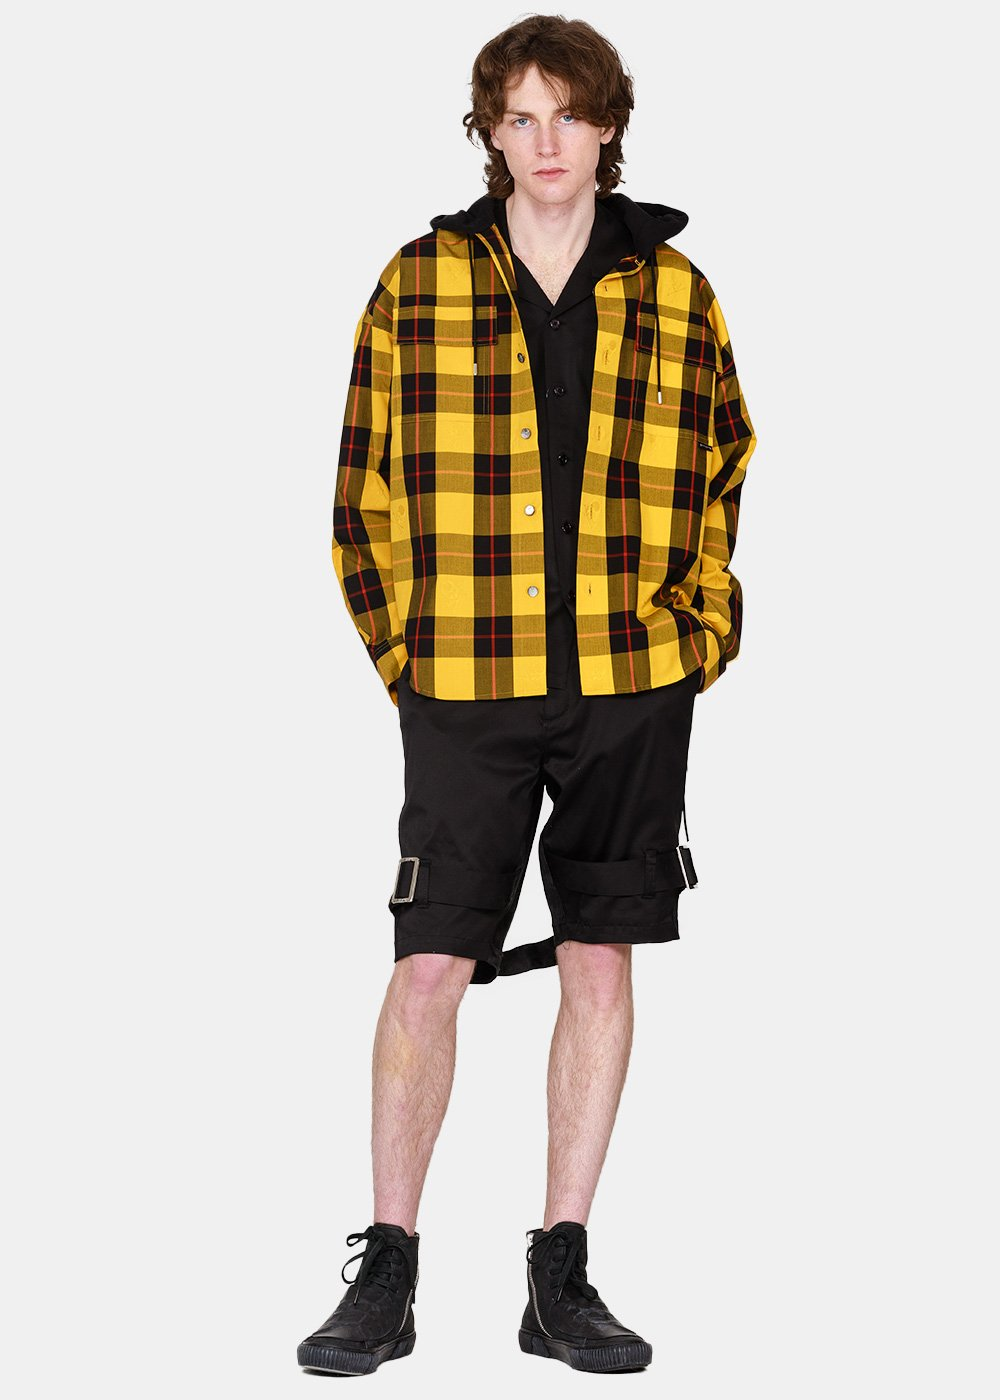 Yellow & Black Plaid Hooded Shirt